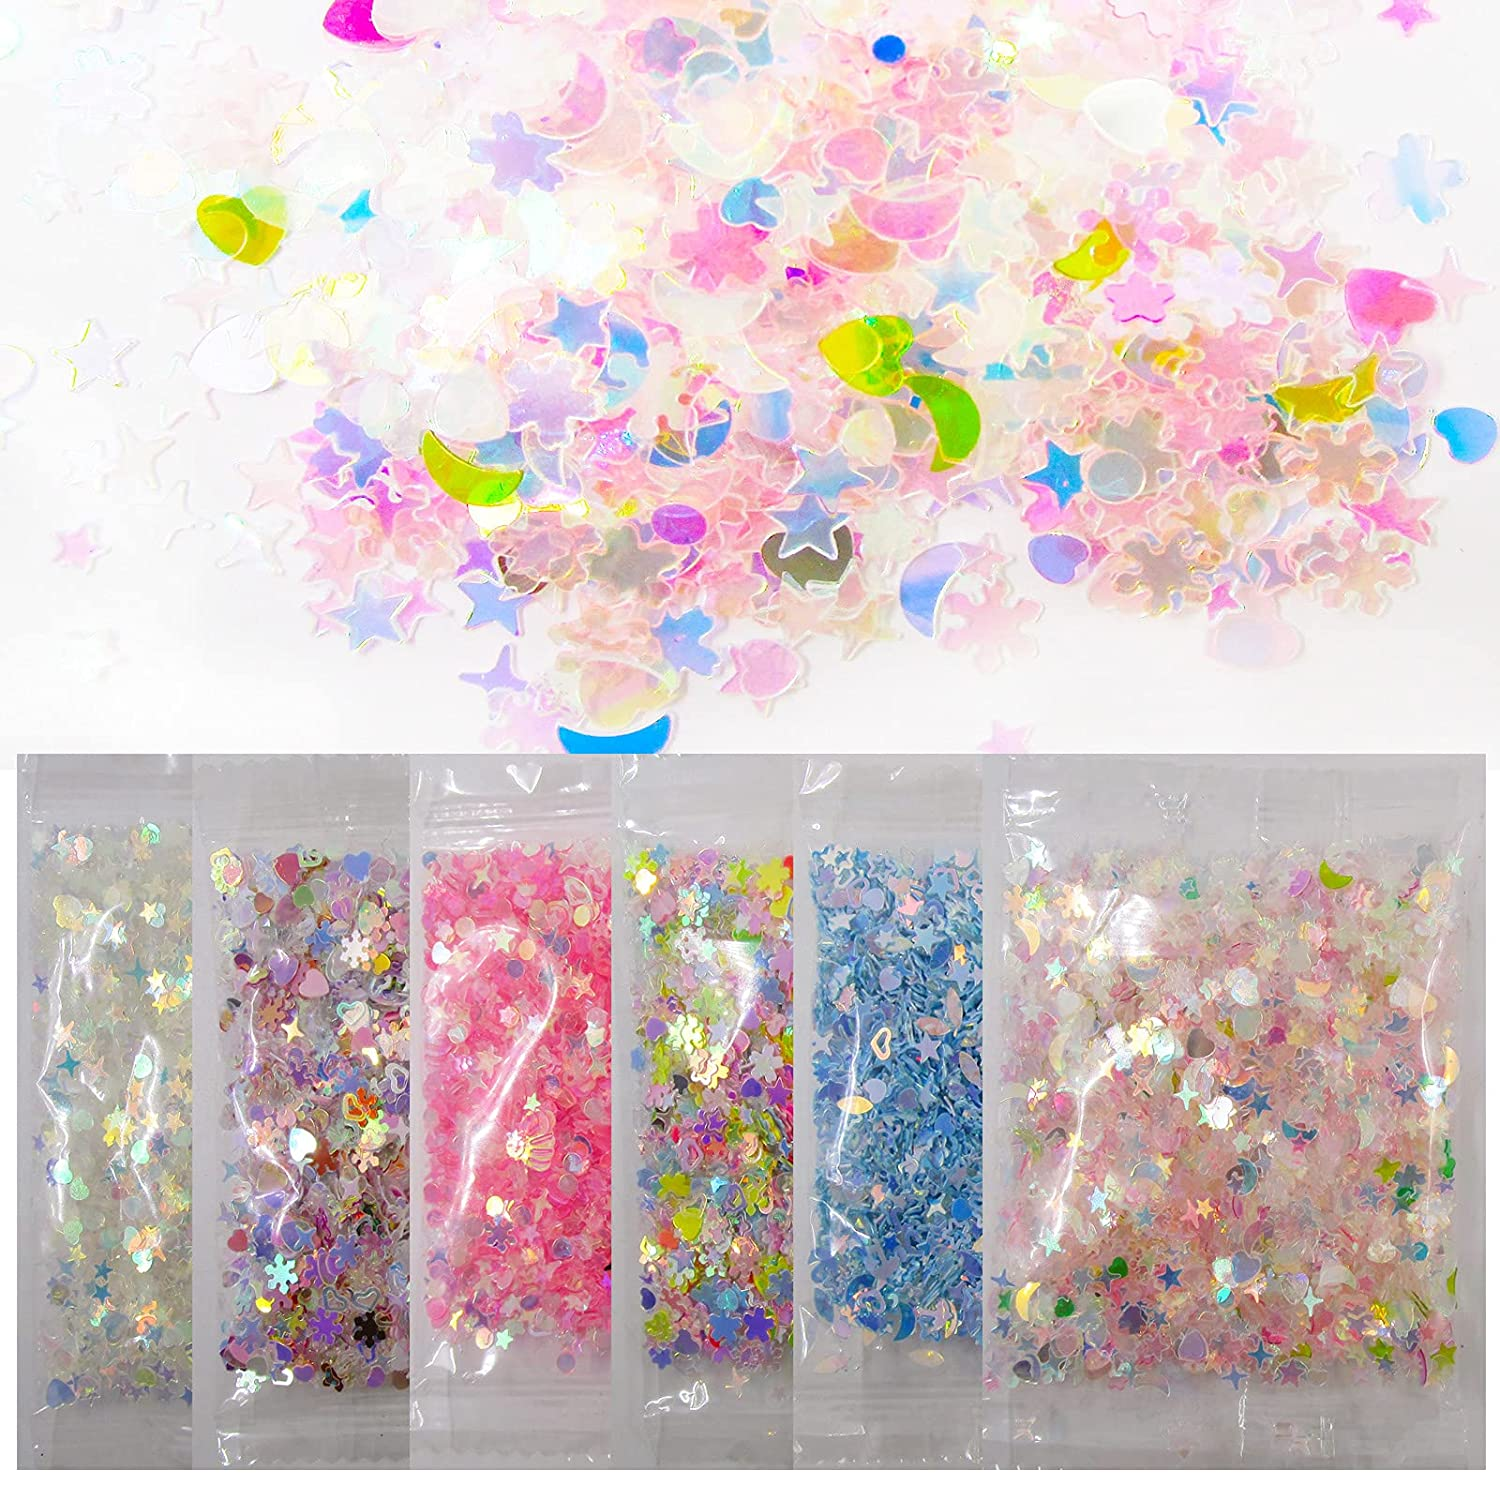 60g Resin Crafts Glitter Accessories Star Heart Moon Shell Glitter Shapes Confetti Sequins Slime Charms Nail Art Decor 6 Colors. (Star)